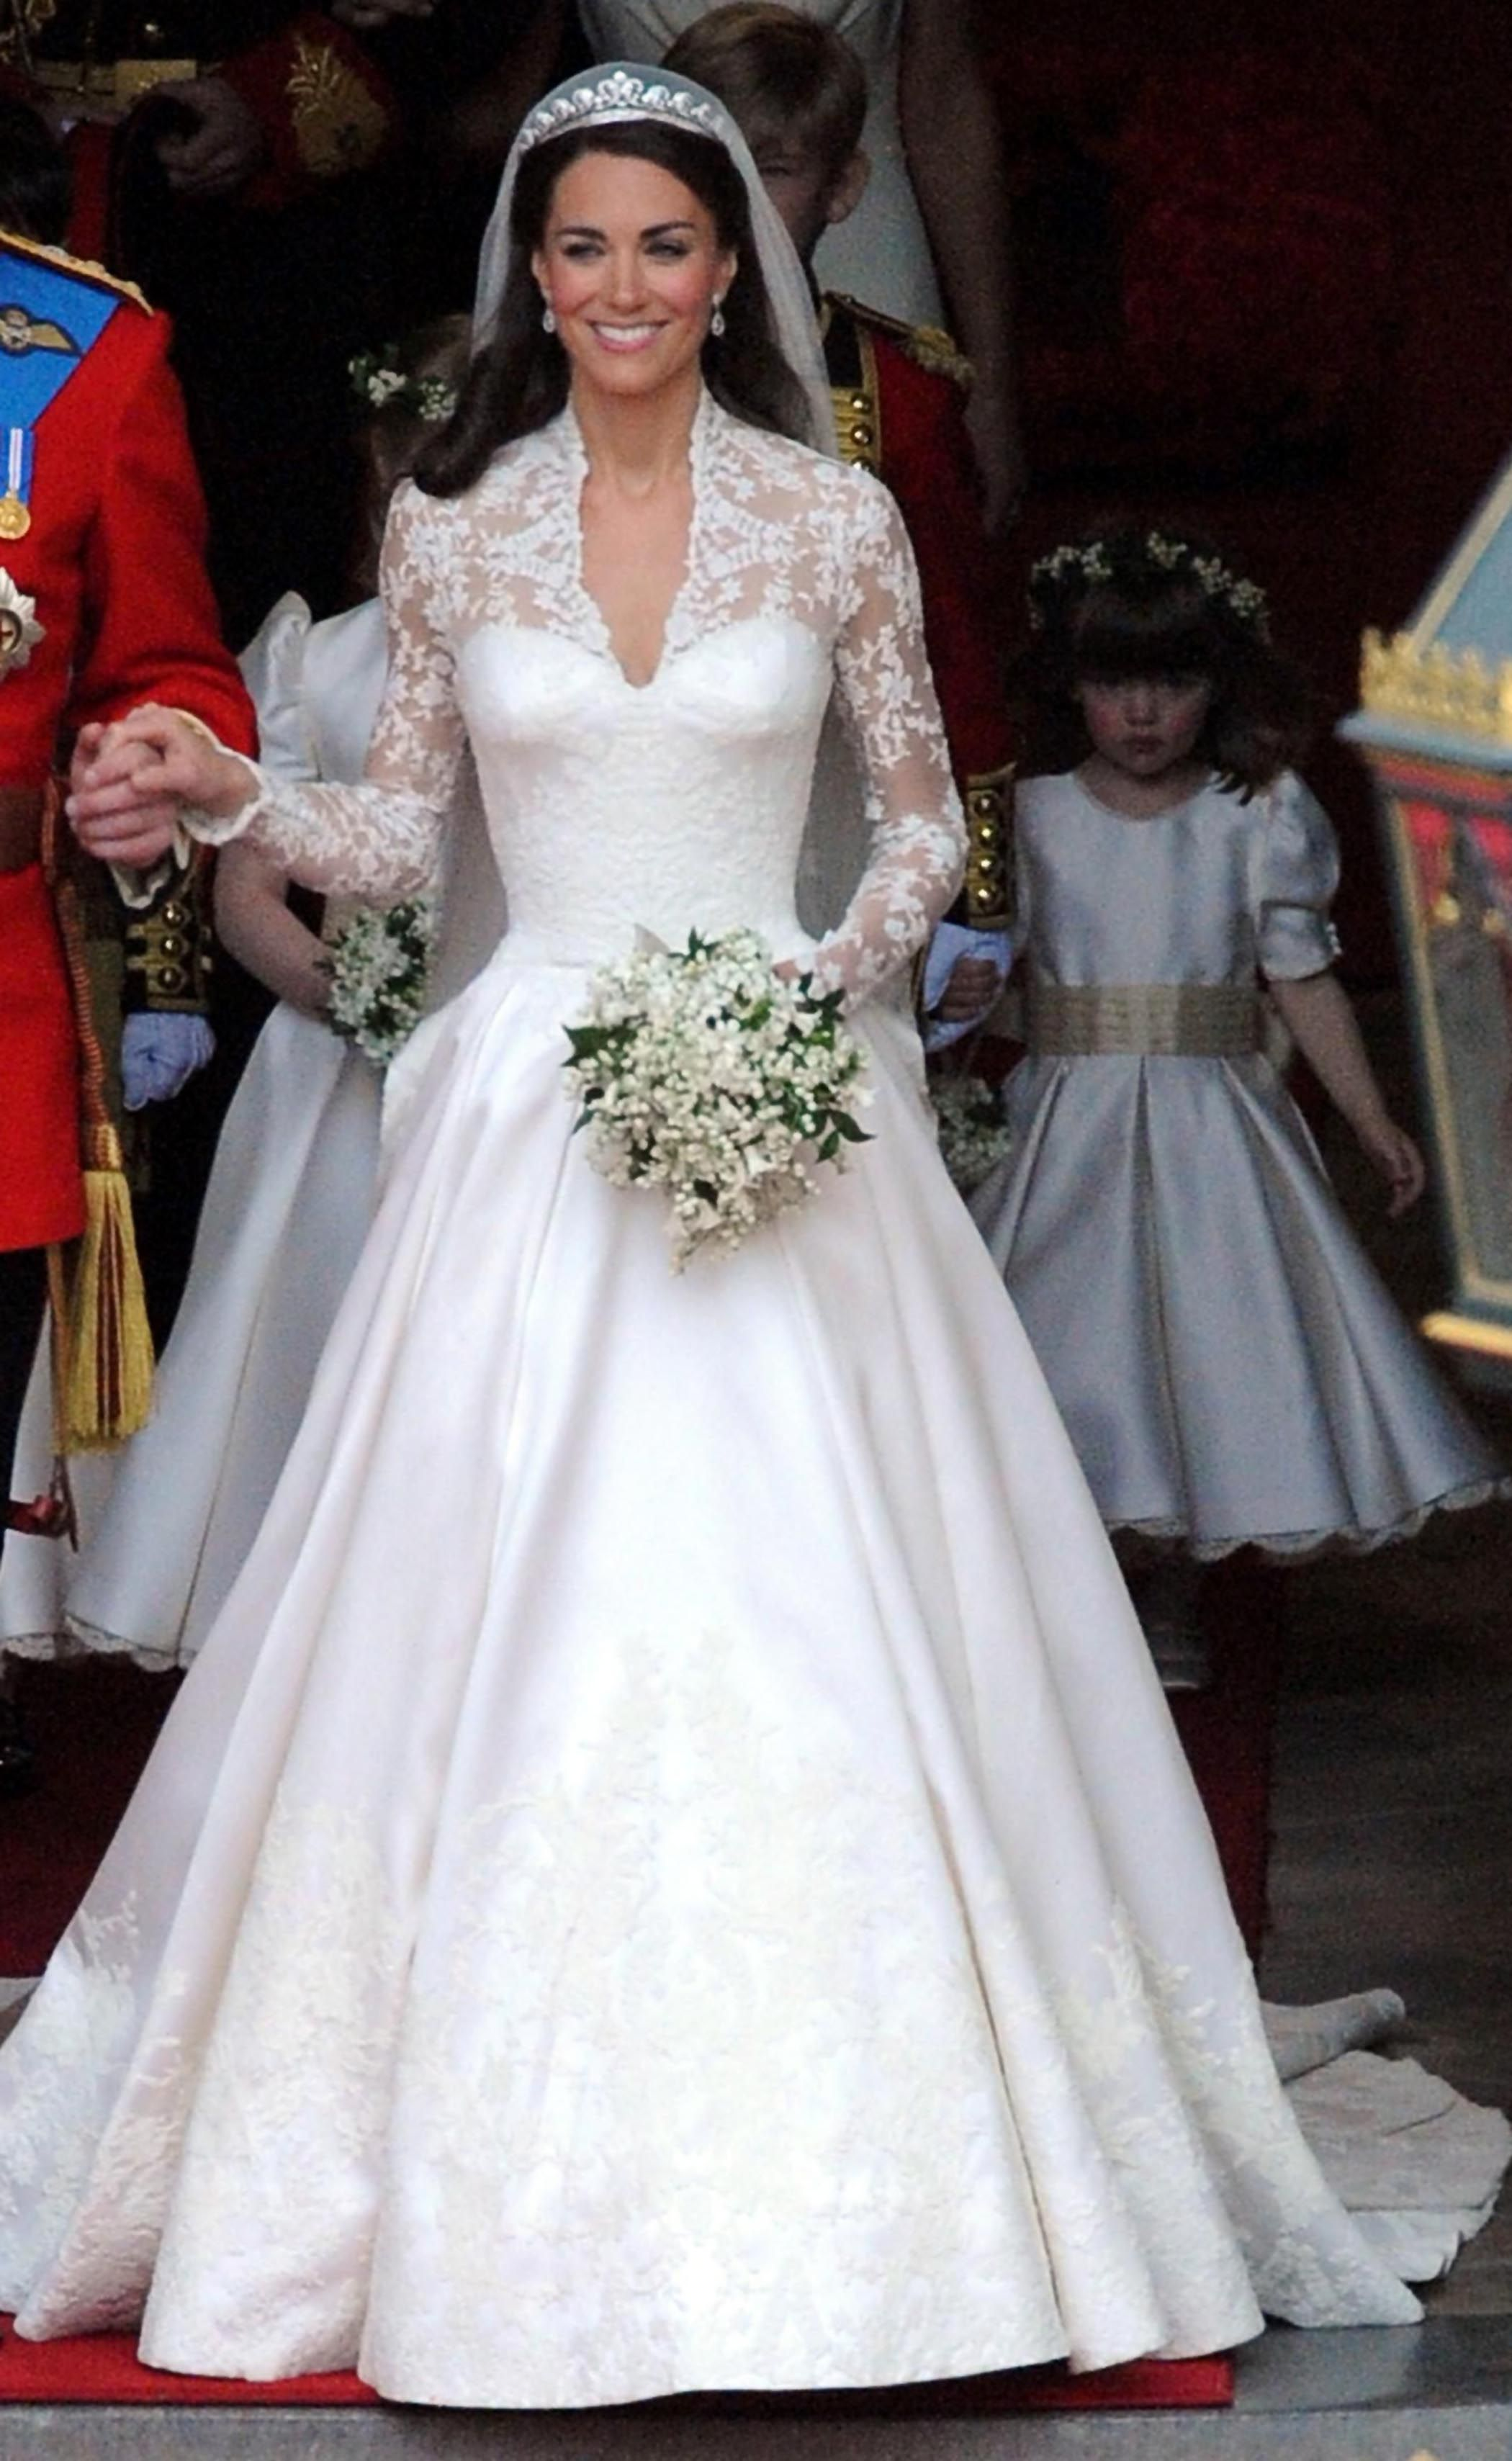 10 New Rules For Wedding Dresses | Kate middleton, Kate middleton ...